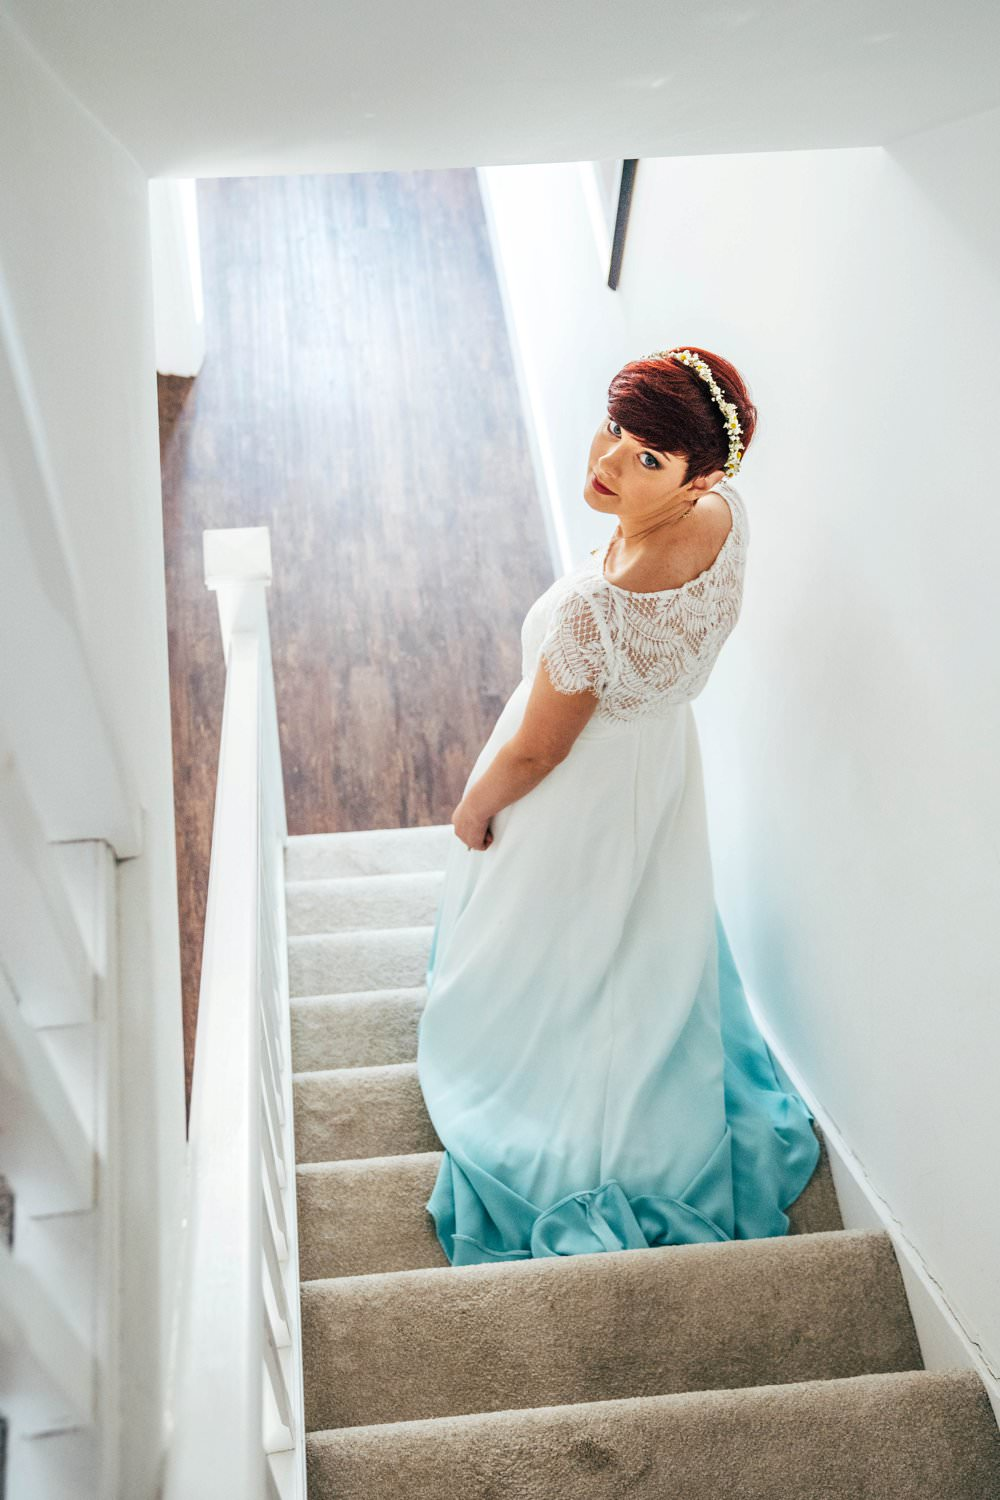 Bride Bridal Dress Gown Alternative Dip Dye Blue Colour Colourful Outdoor DIY Wedding Three Flowers Photography